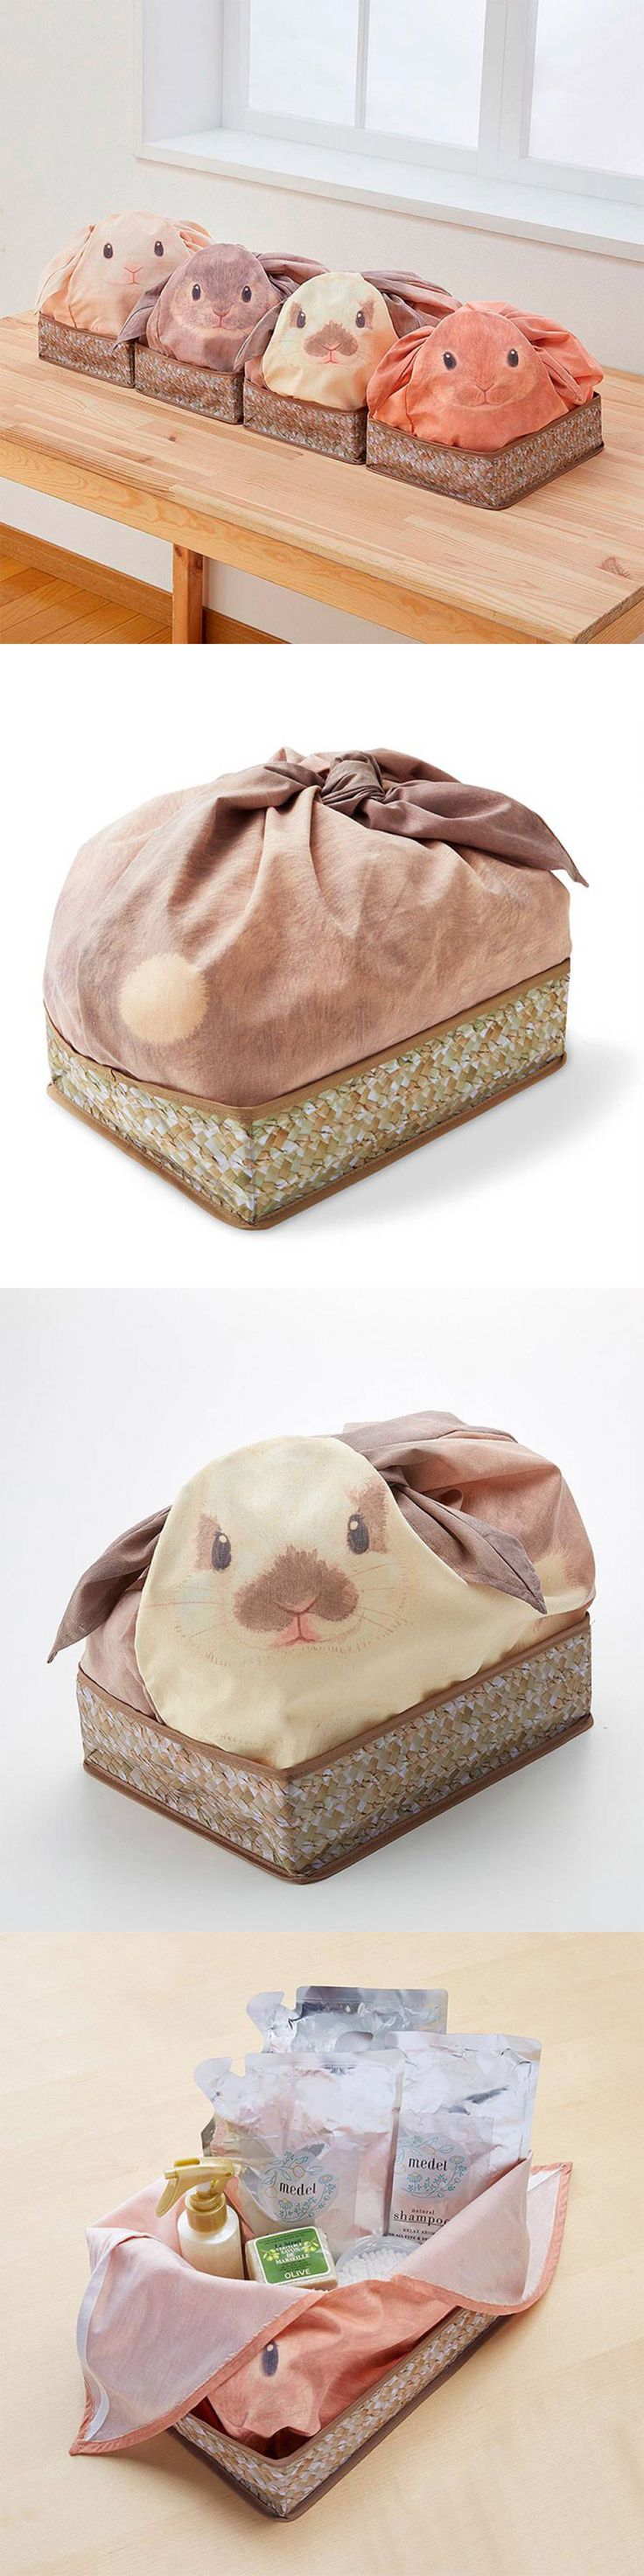 YOU+MORE! by Felissimo / Cute Rabbit Bag to Hide Household Stuffs #design #packaging